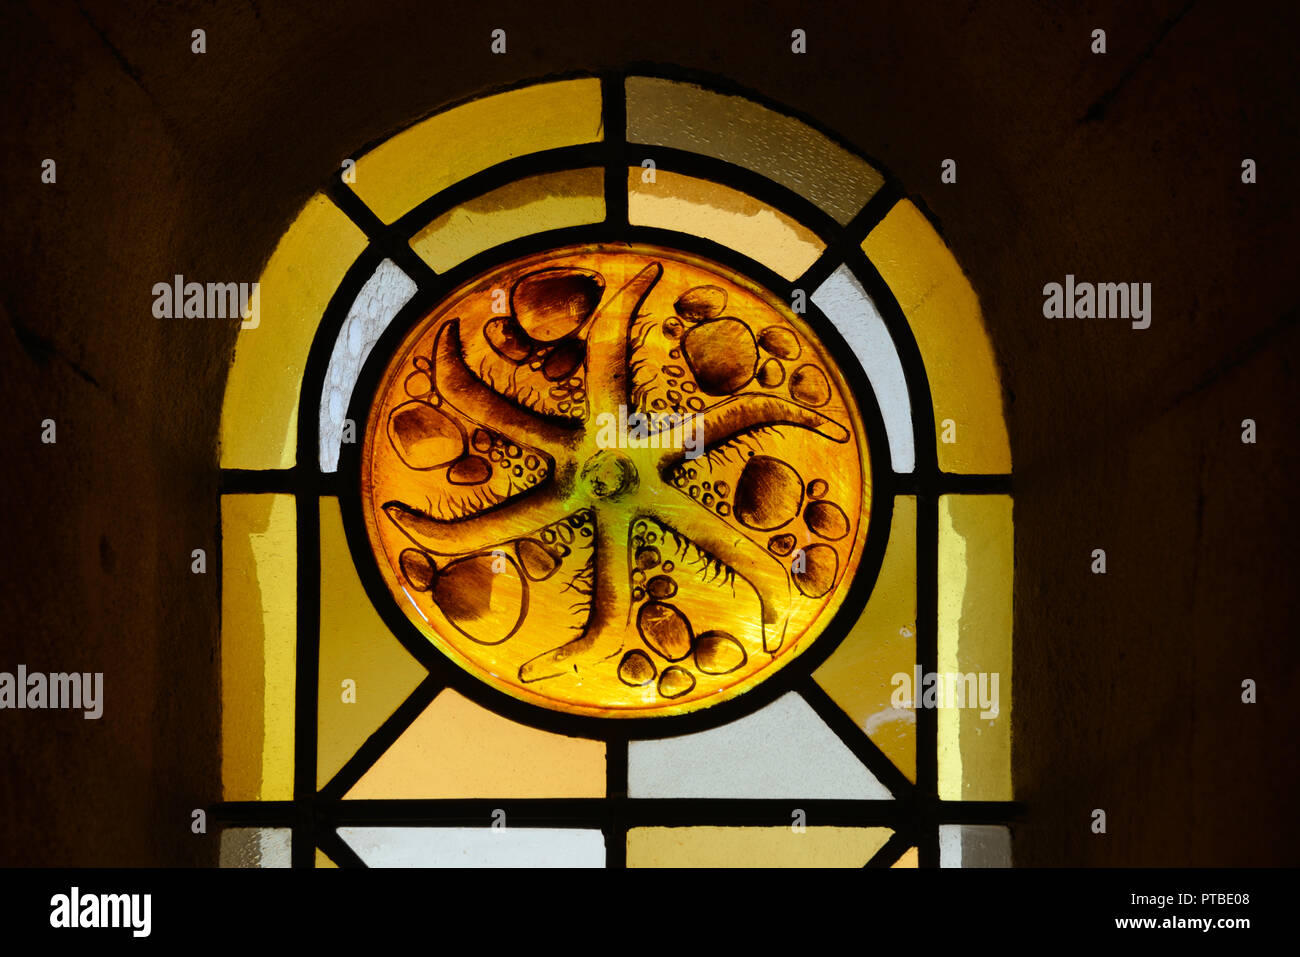 Abstract or Geometric Patterns of Stained Glass Window in the Church of Saint Trophime Arles Provence France - Stock Image